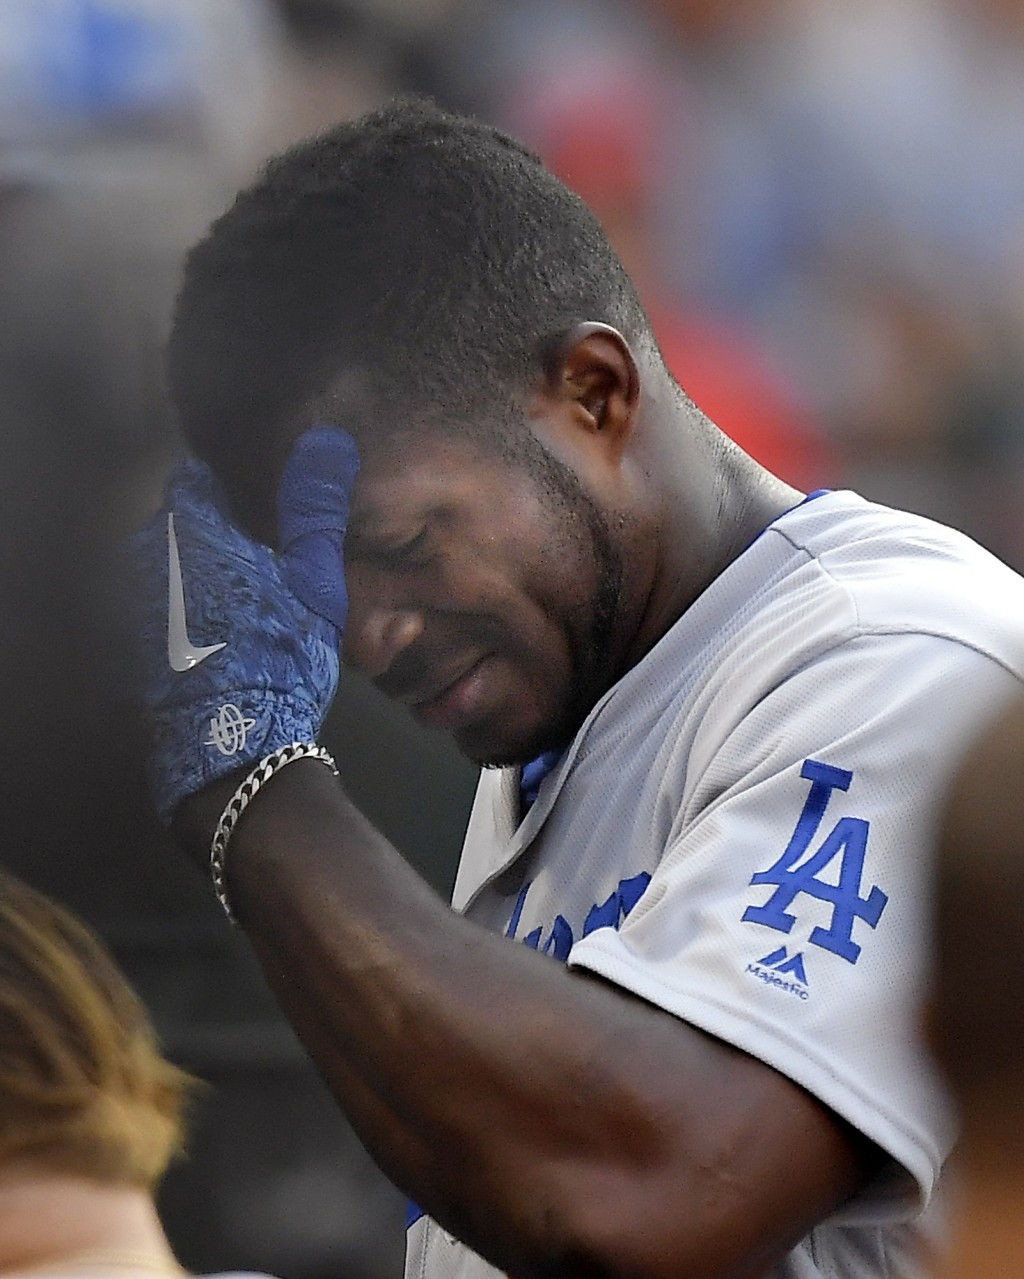 Los Angeles Dodgers' Yasiel Puig leaves the field after injuring himself while batting during the fifth inning of a baseball game against the Los Ange